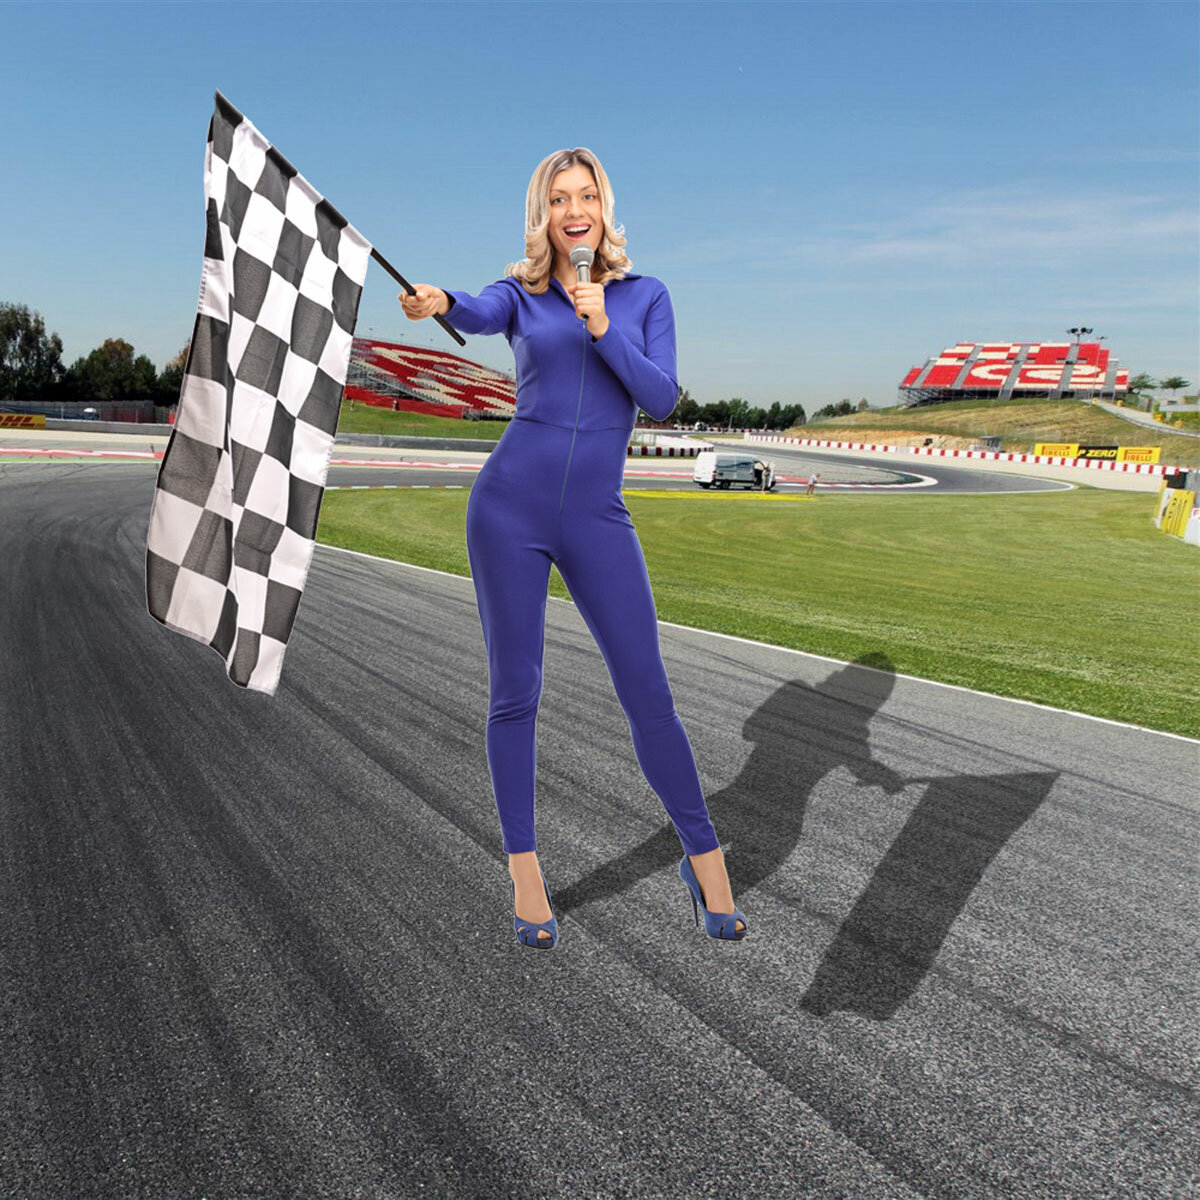 Woman In Racesuit Waving Chequered Flag Front